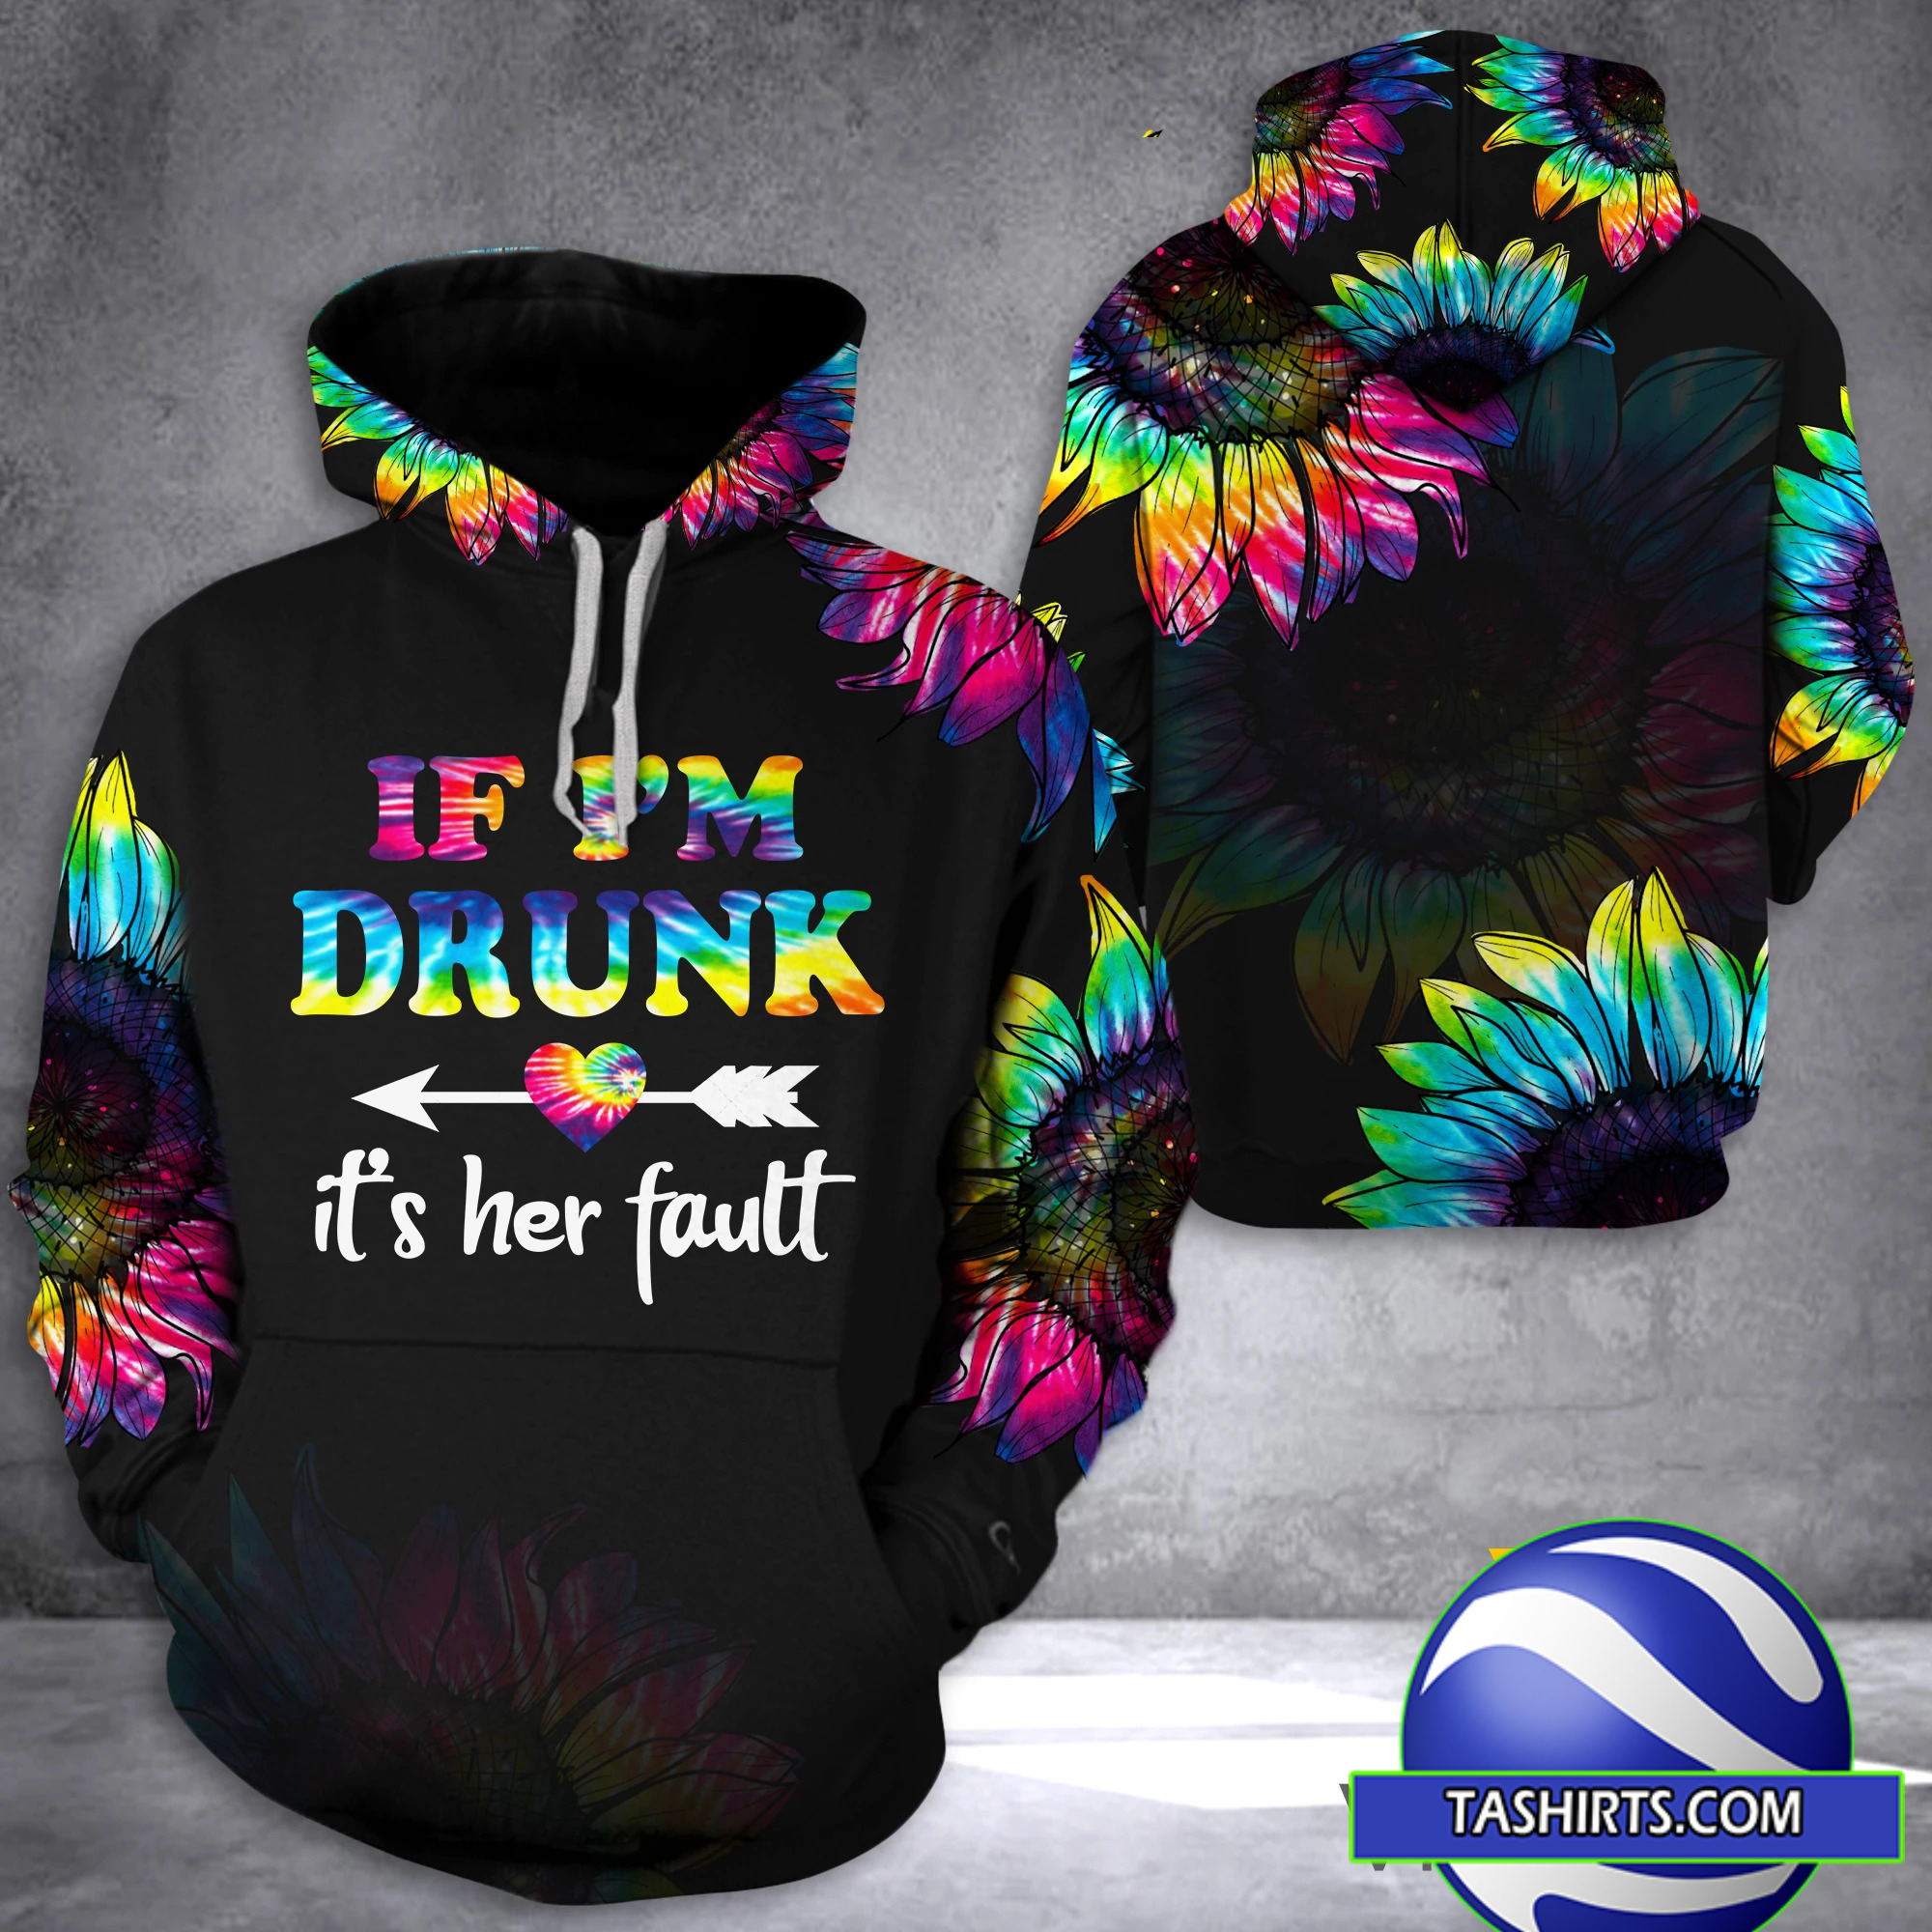 If I'm drunk it's her fault criss-cross open back camisole tank top